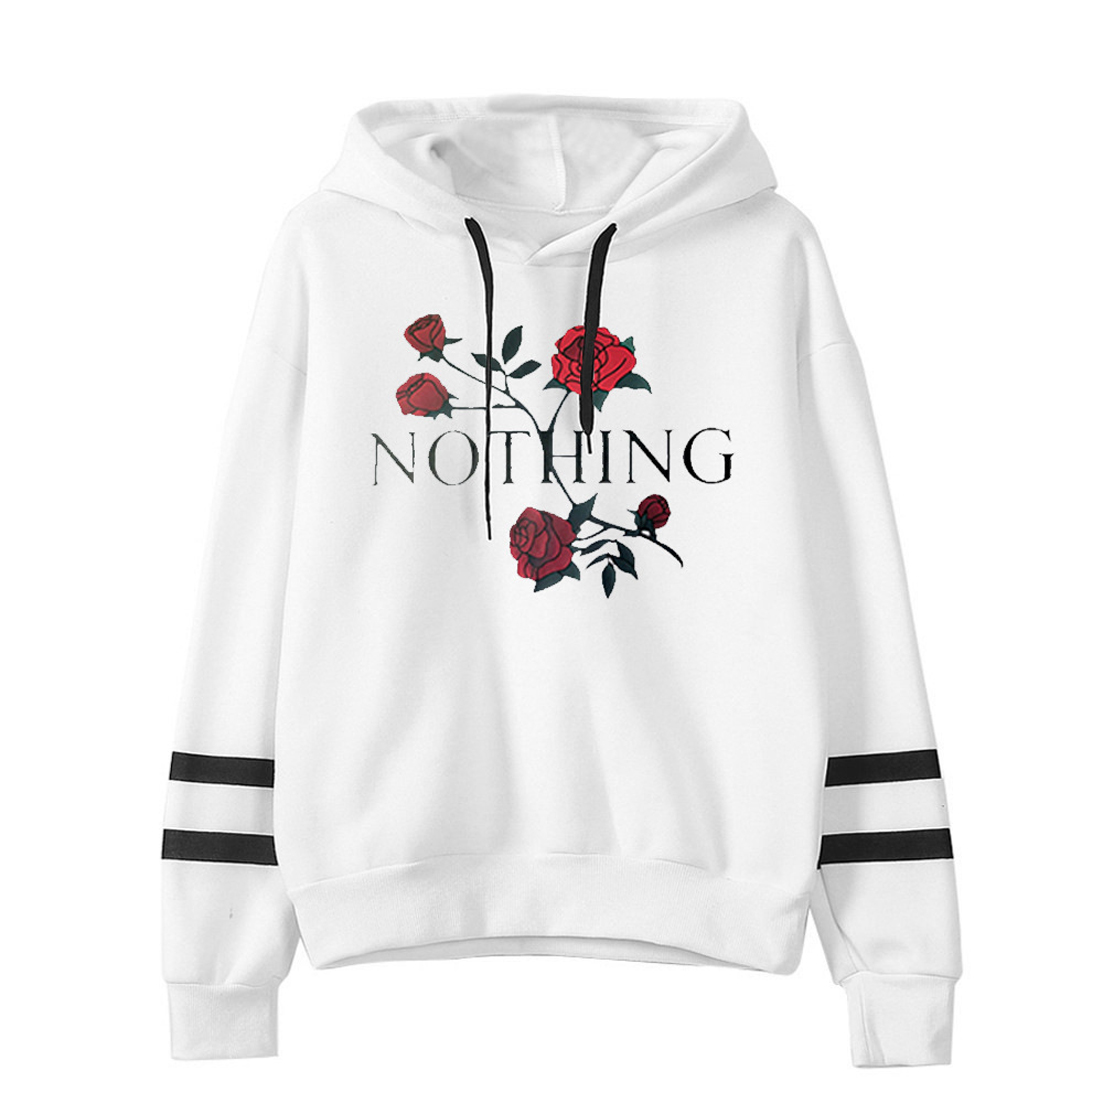 YJSFG HOUSE New Women Coat Fashion Hood Girl Sweatshirt Long Sleeve Winter Home Loose Letter Casual Pullover Tops Floral Clothes